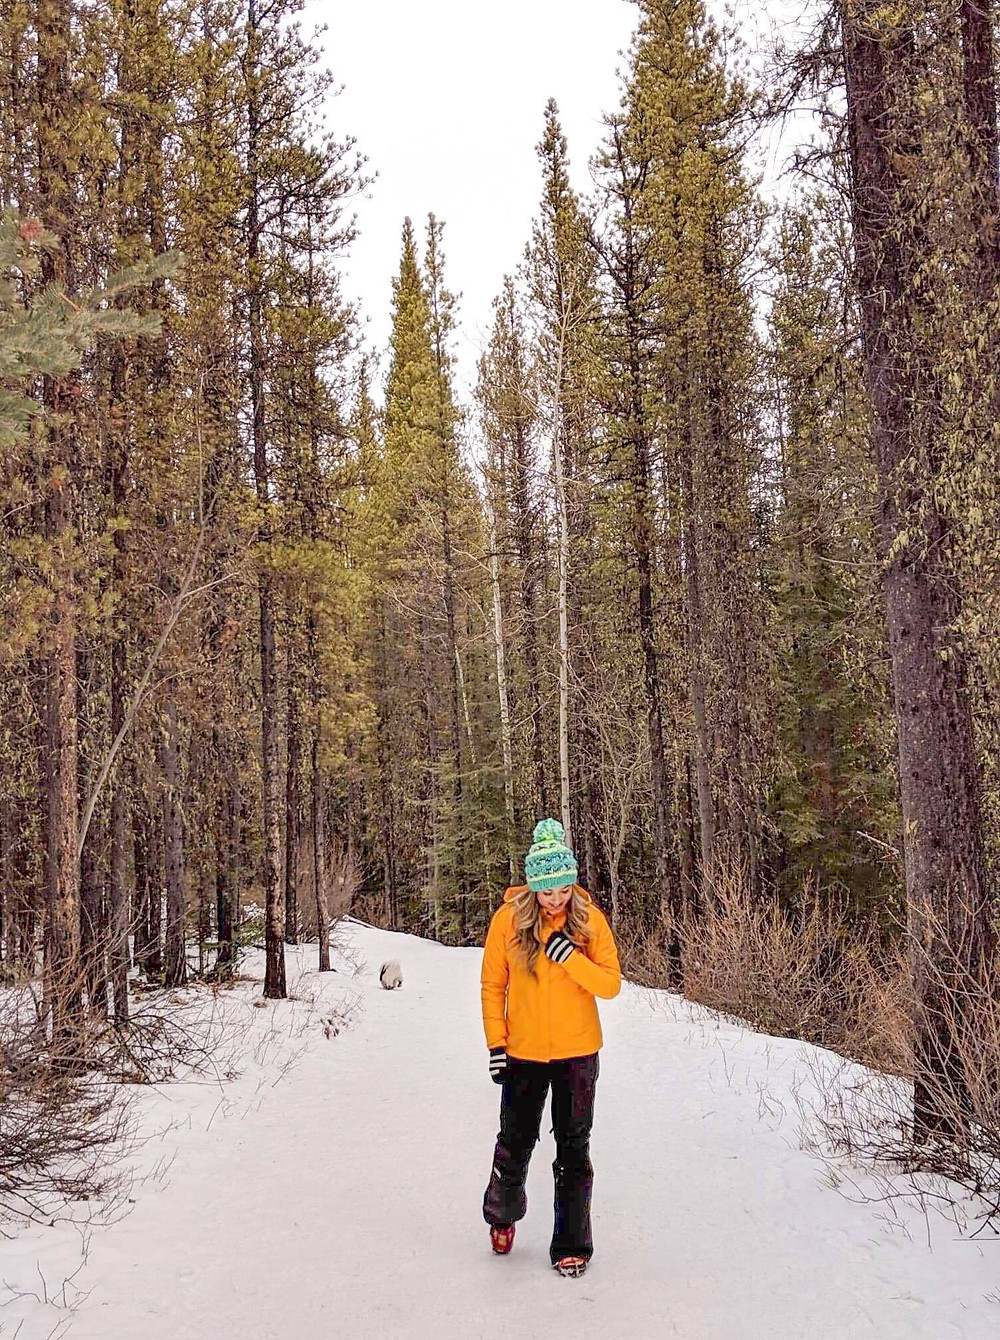 Girl travel blogger hiking in Canadian rocky mountains in the forest during winter time with fluffy white dog in the background. The North Face hiking gear.